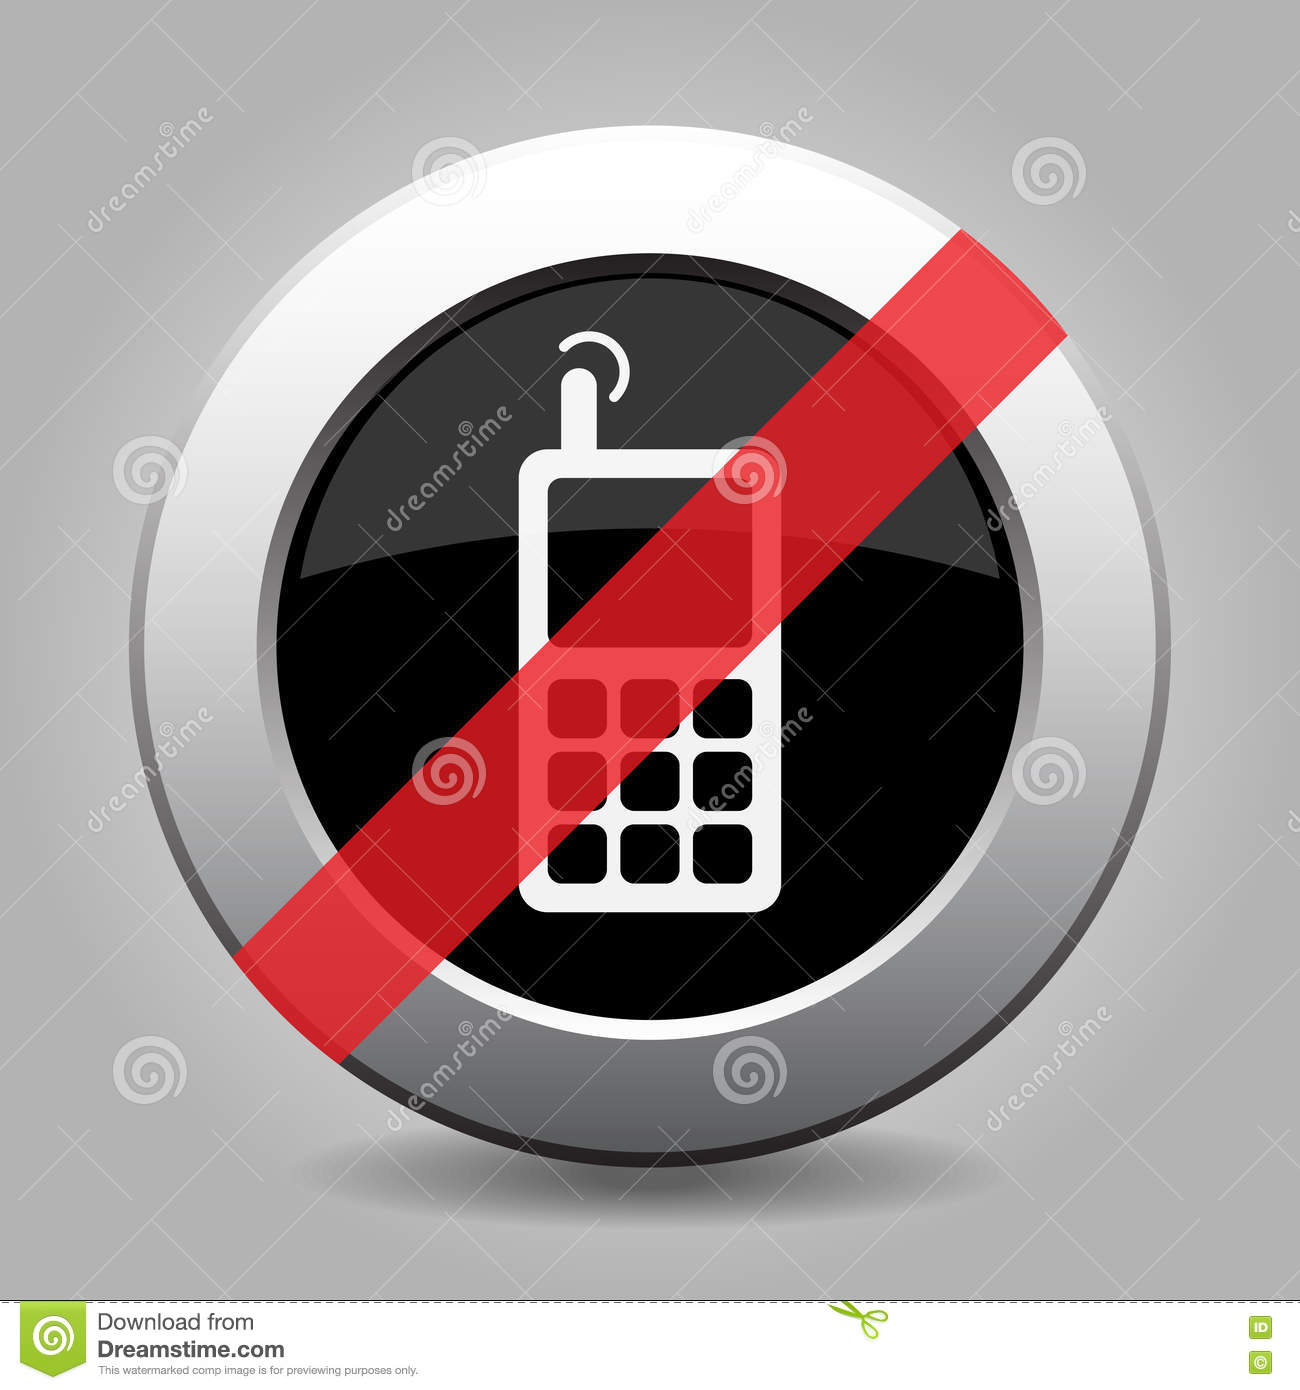 Gray chrome button - no old mobile phone